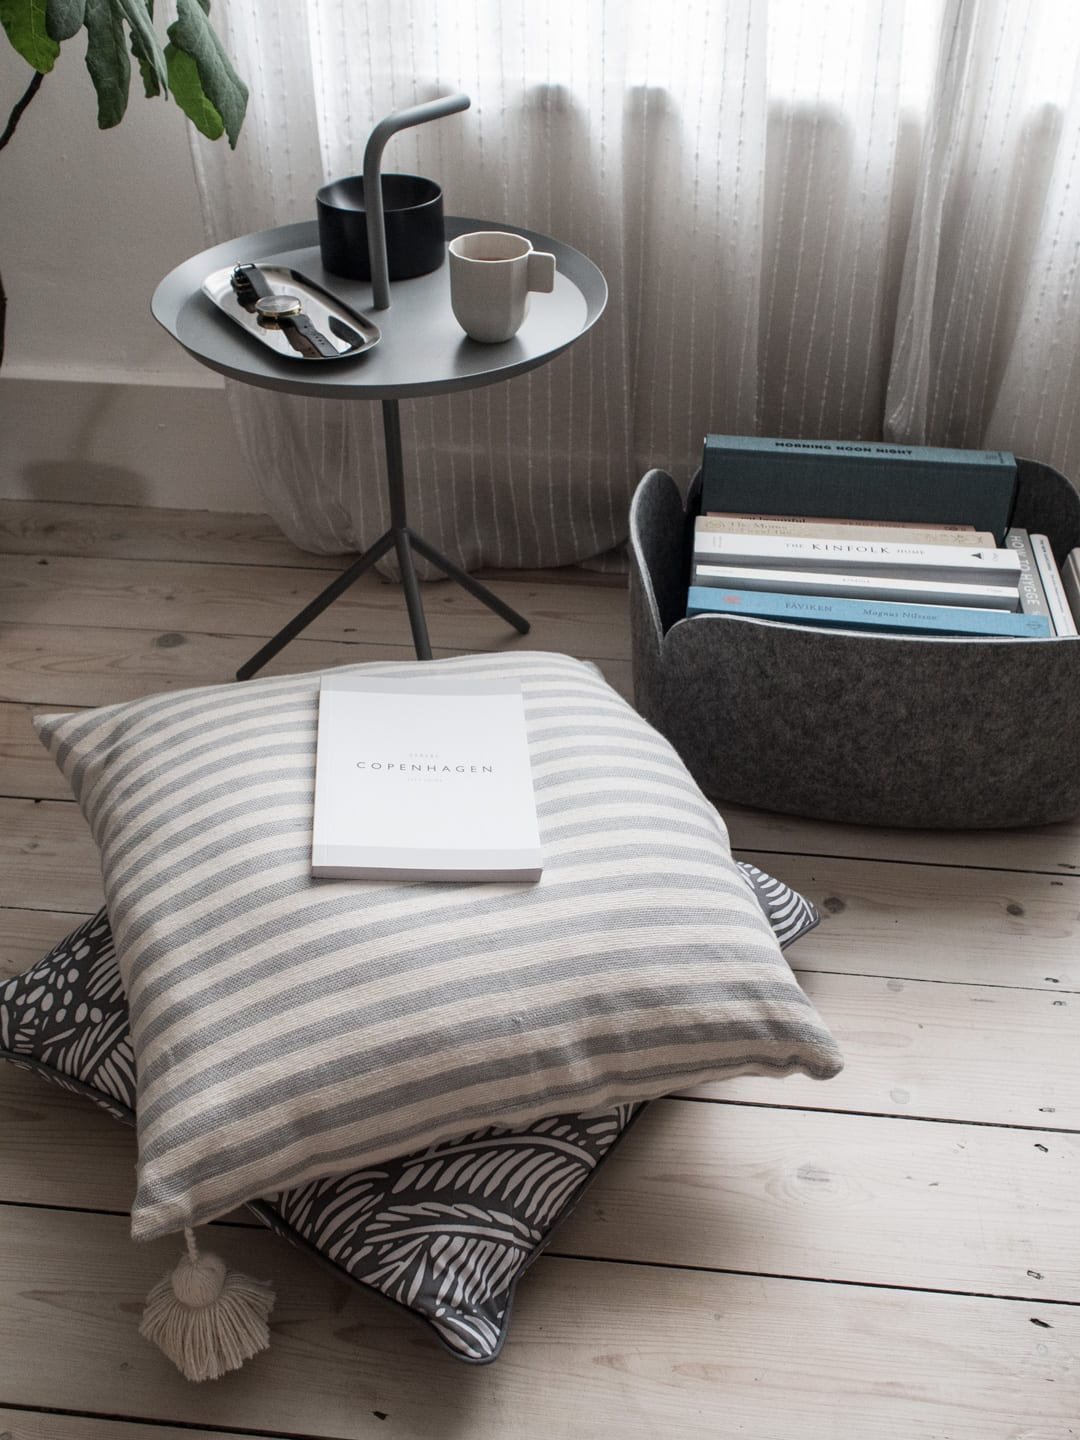 Hay DLM Side Table Grey, Normann Copenhagen Moon Tray Black, Hay Tray, Hay Paper Porcelain Coffee Cup, Wood/Grey Cushion, Happy & Co Cushion, Muuto Restore Storage Basket & Books | Minimalist Interiors Good For You